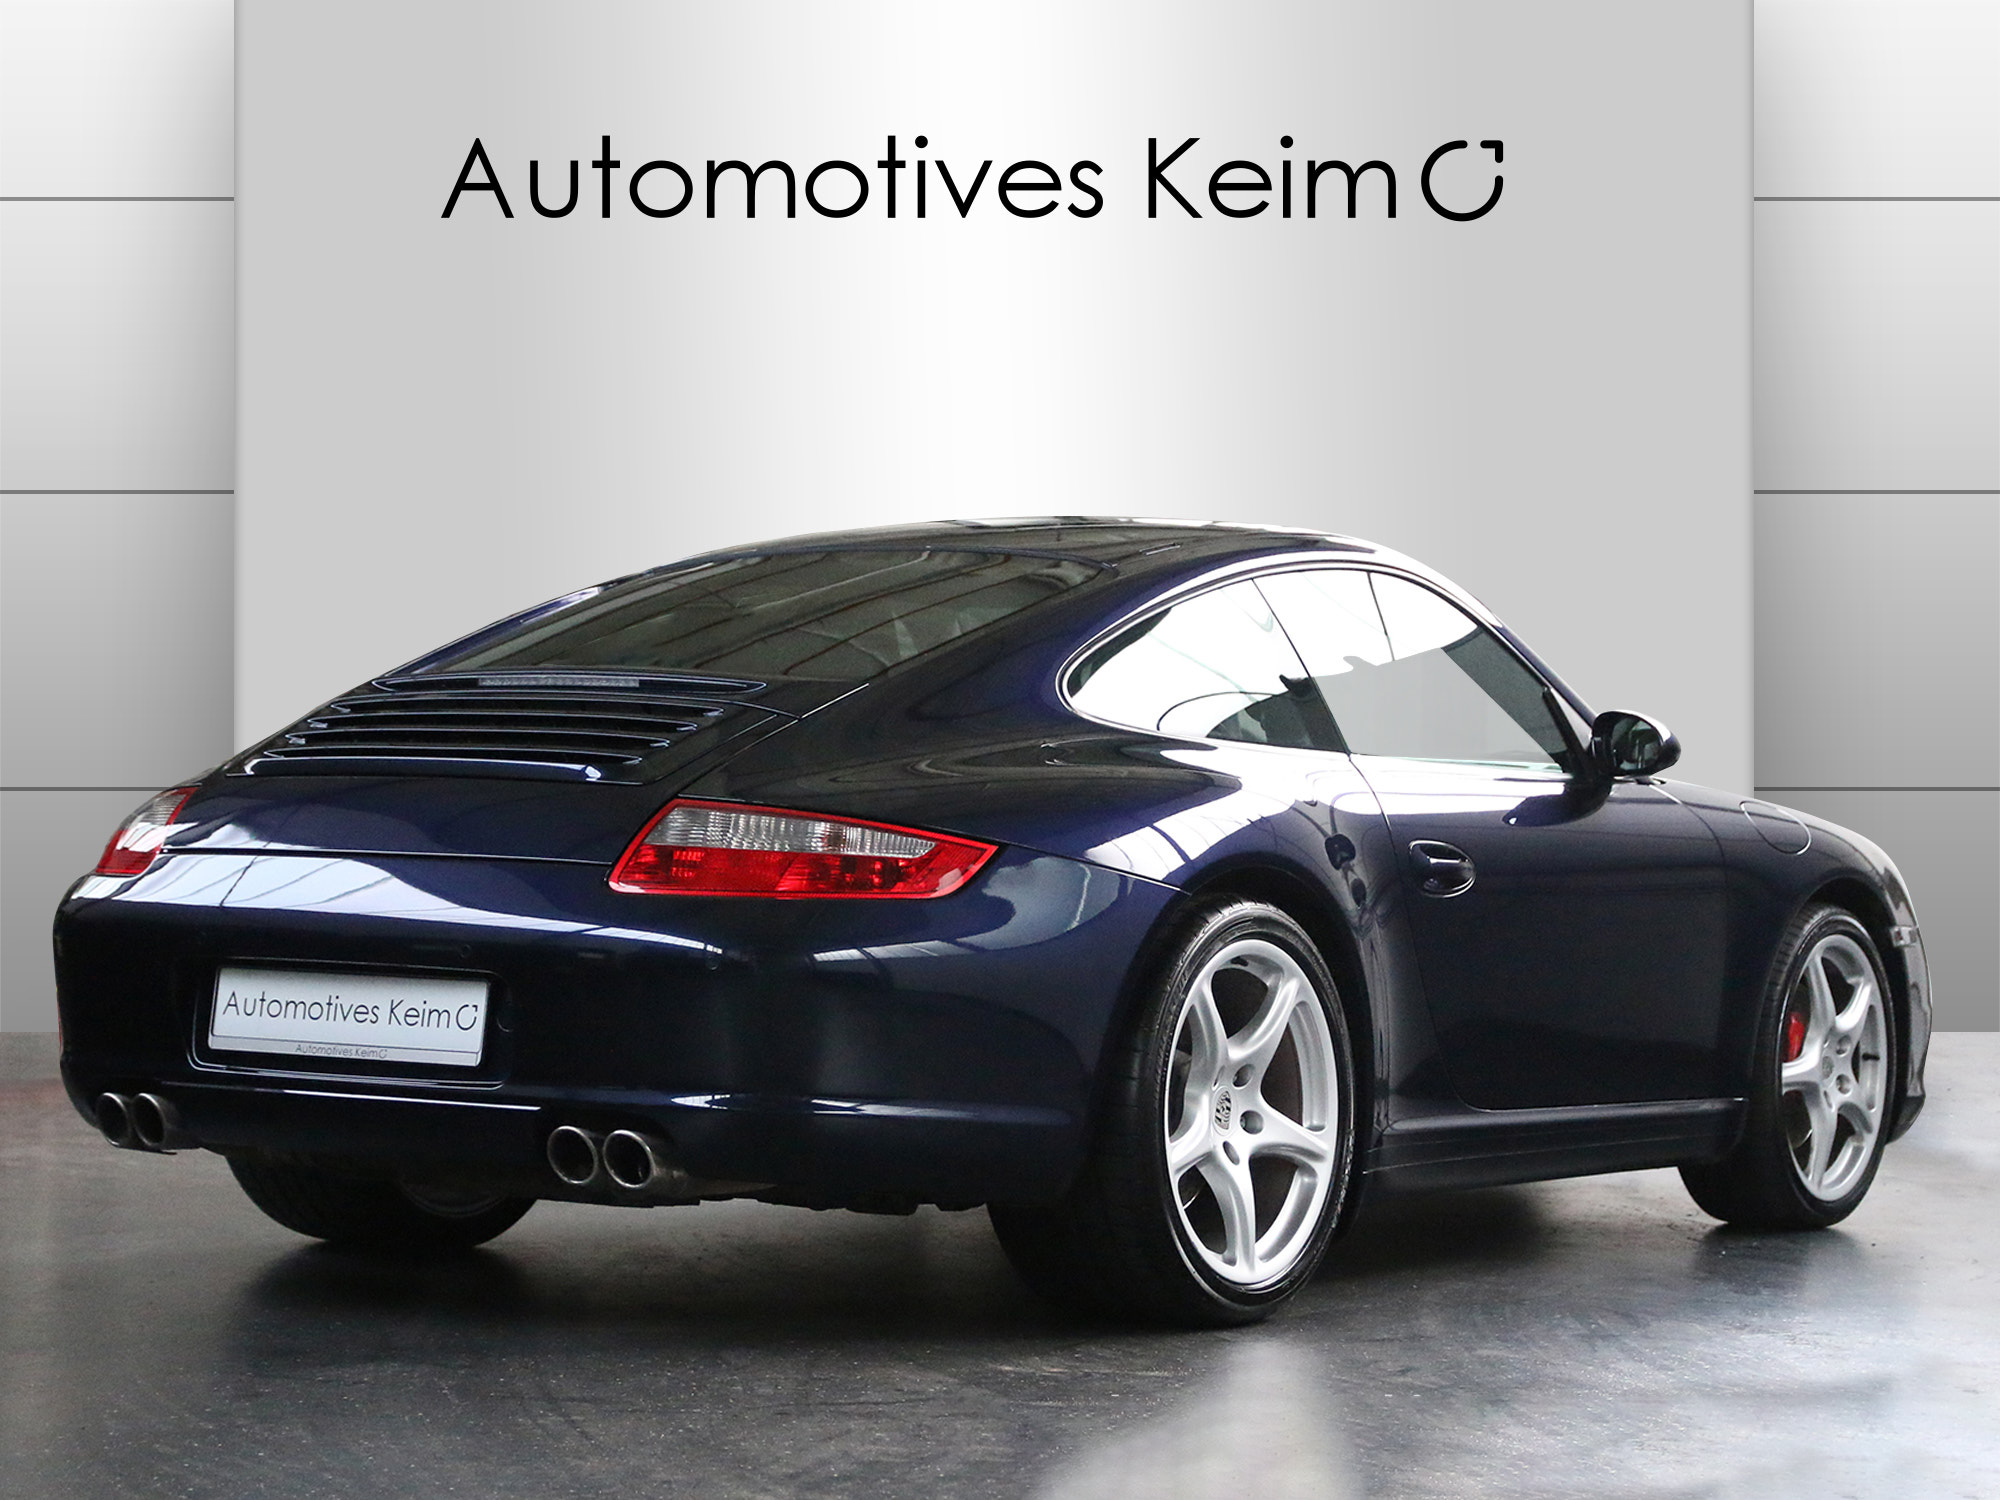 PORSCHE 911 997 Automotives Keim GmbH 63500 Seligenstadt Www.automotives Keim.de Oliver Keim 000135